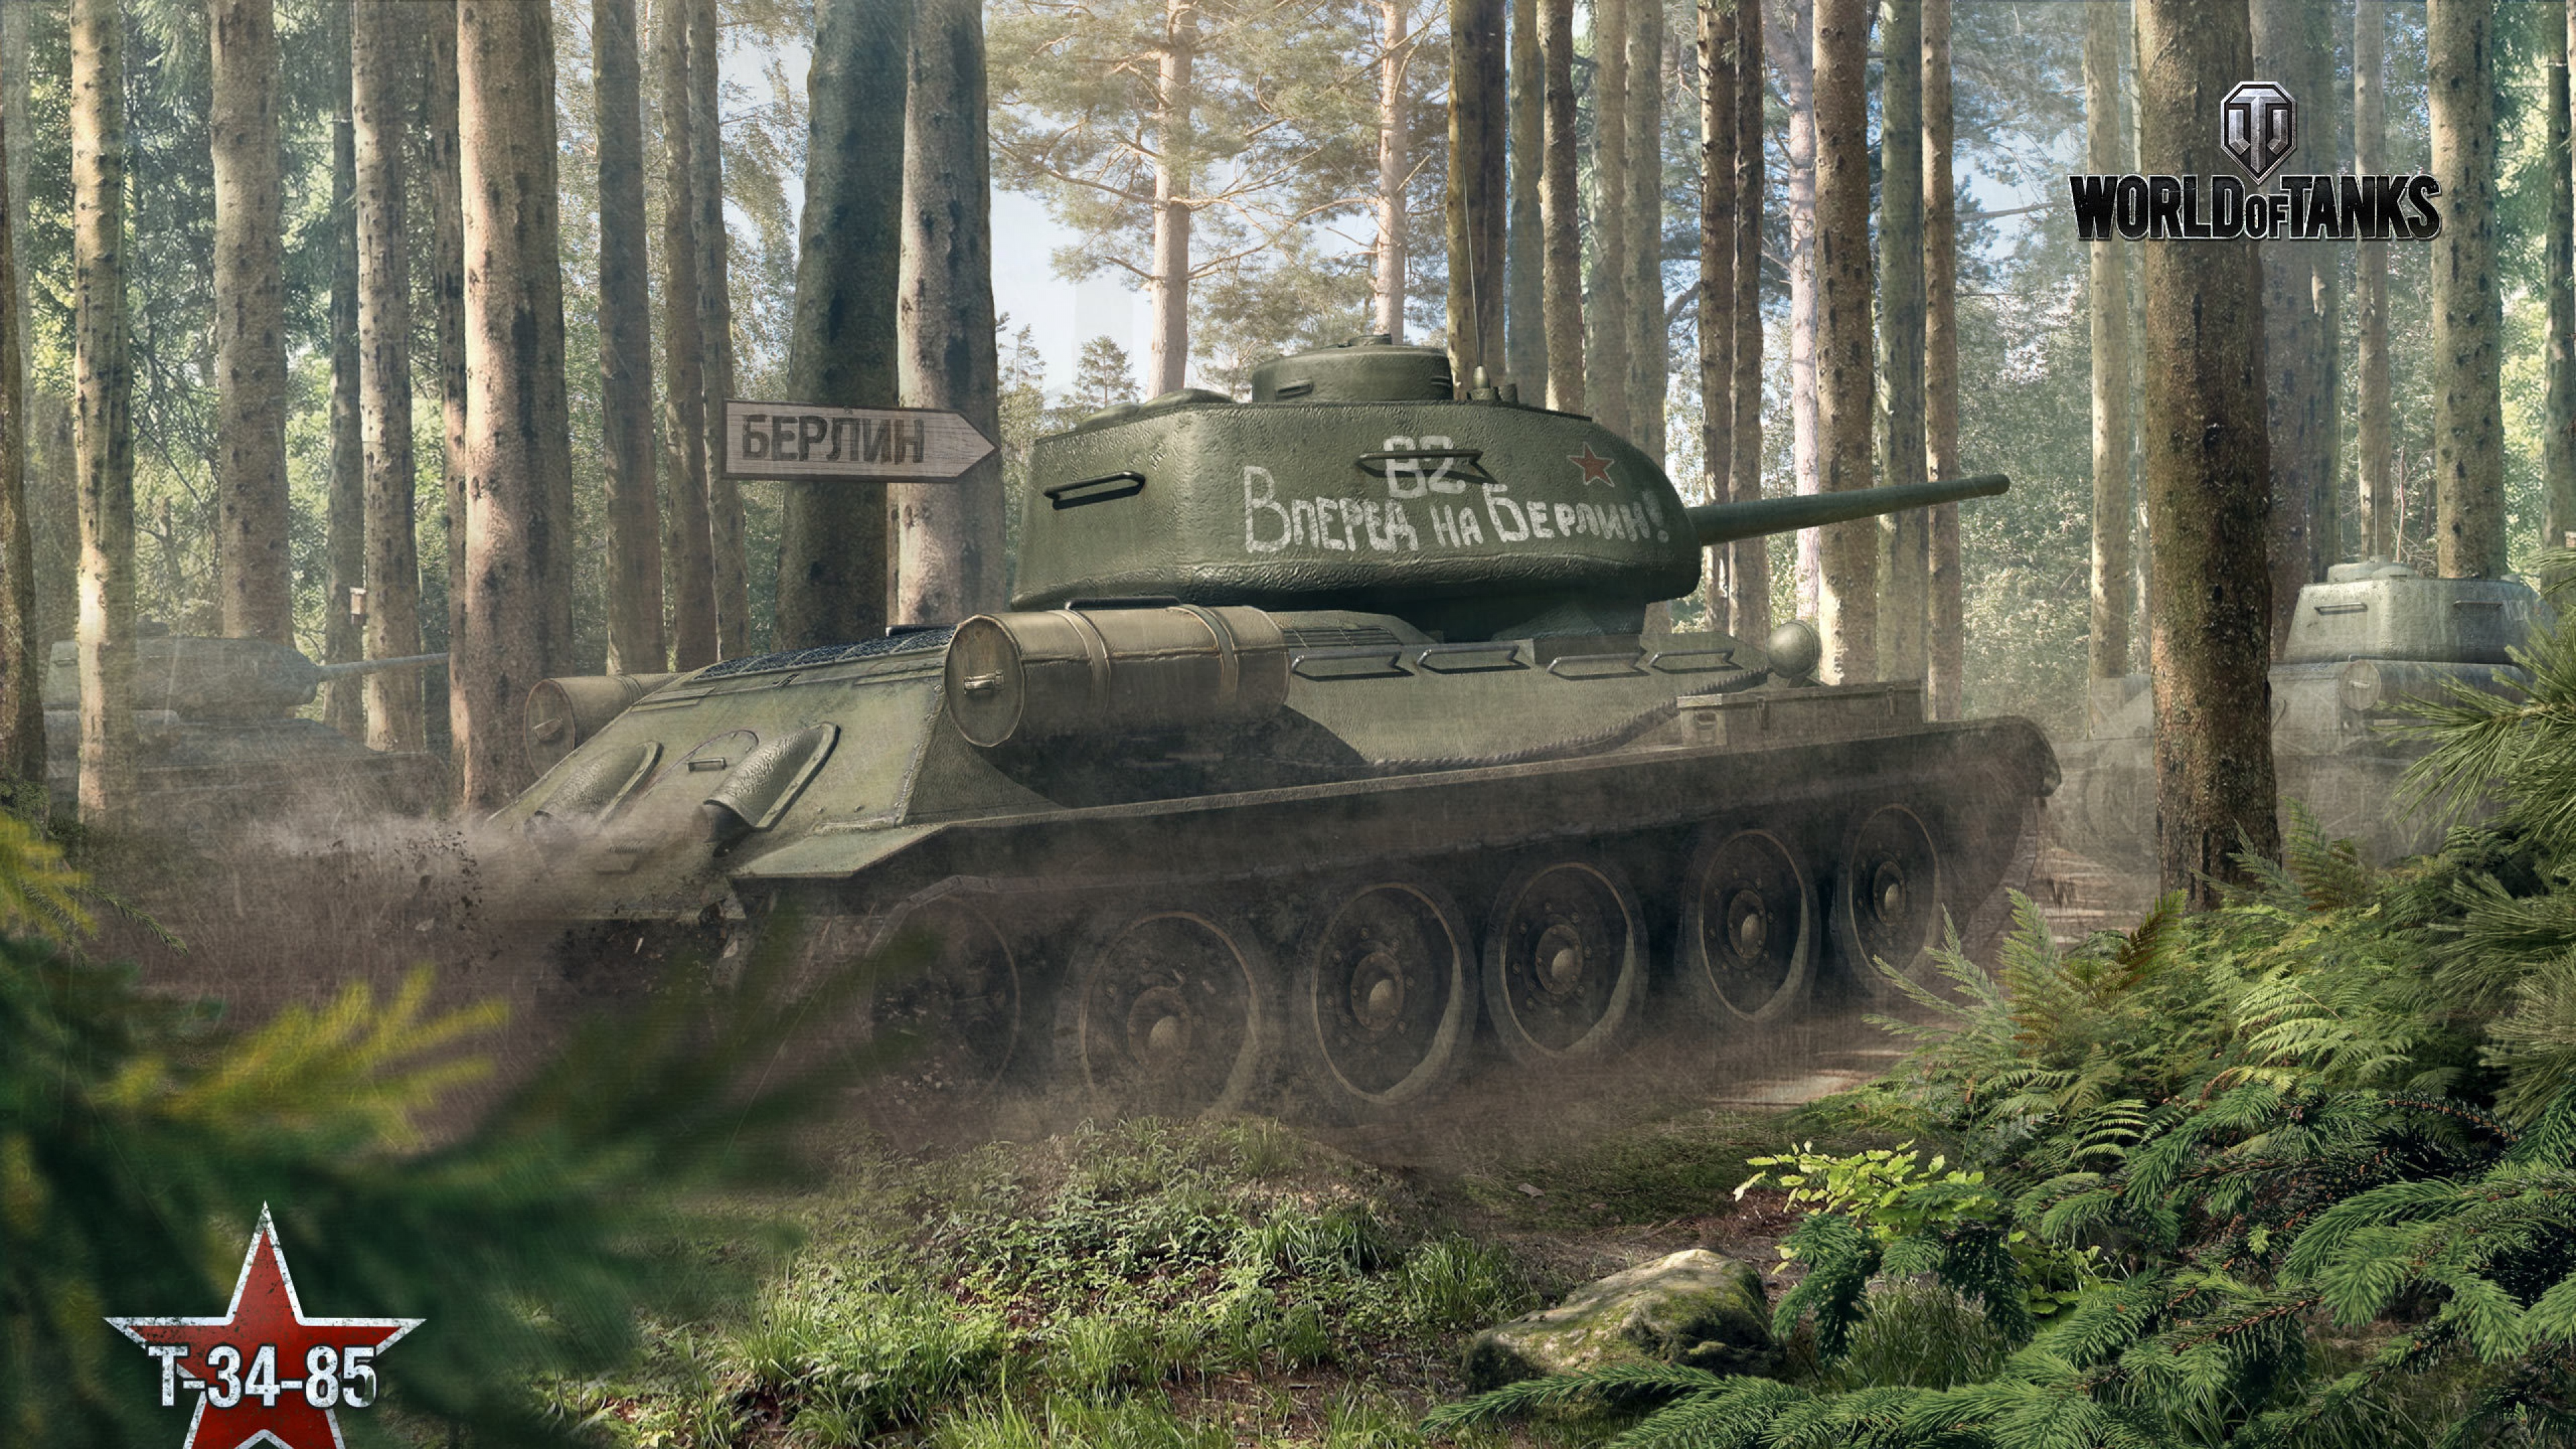 world of tanks 3 1535966478 - World Of Tanks 3 - xbox games wallpapers, world of tanks wallpapers, ps4 games wallpapers, games wallpapers